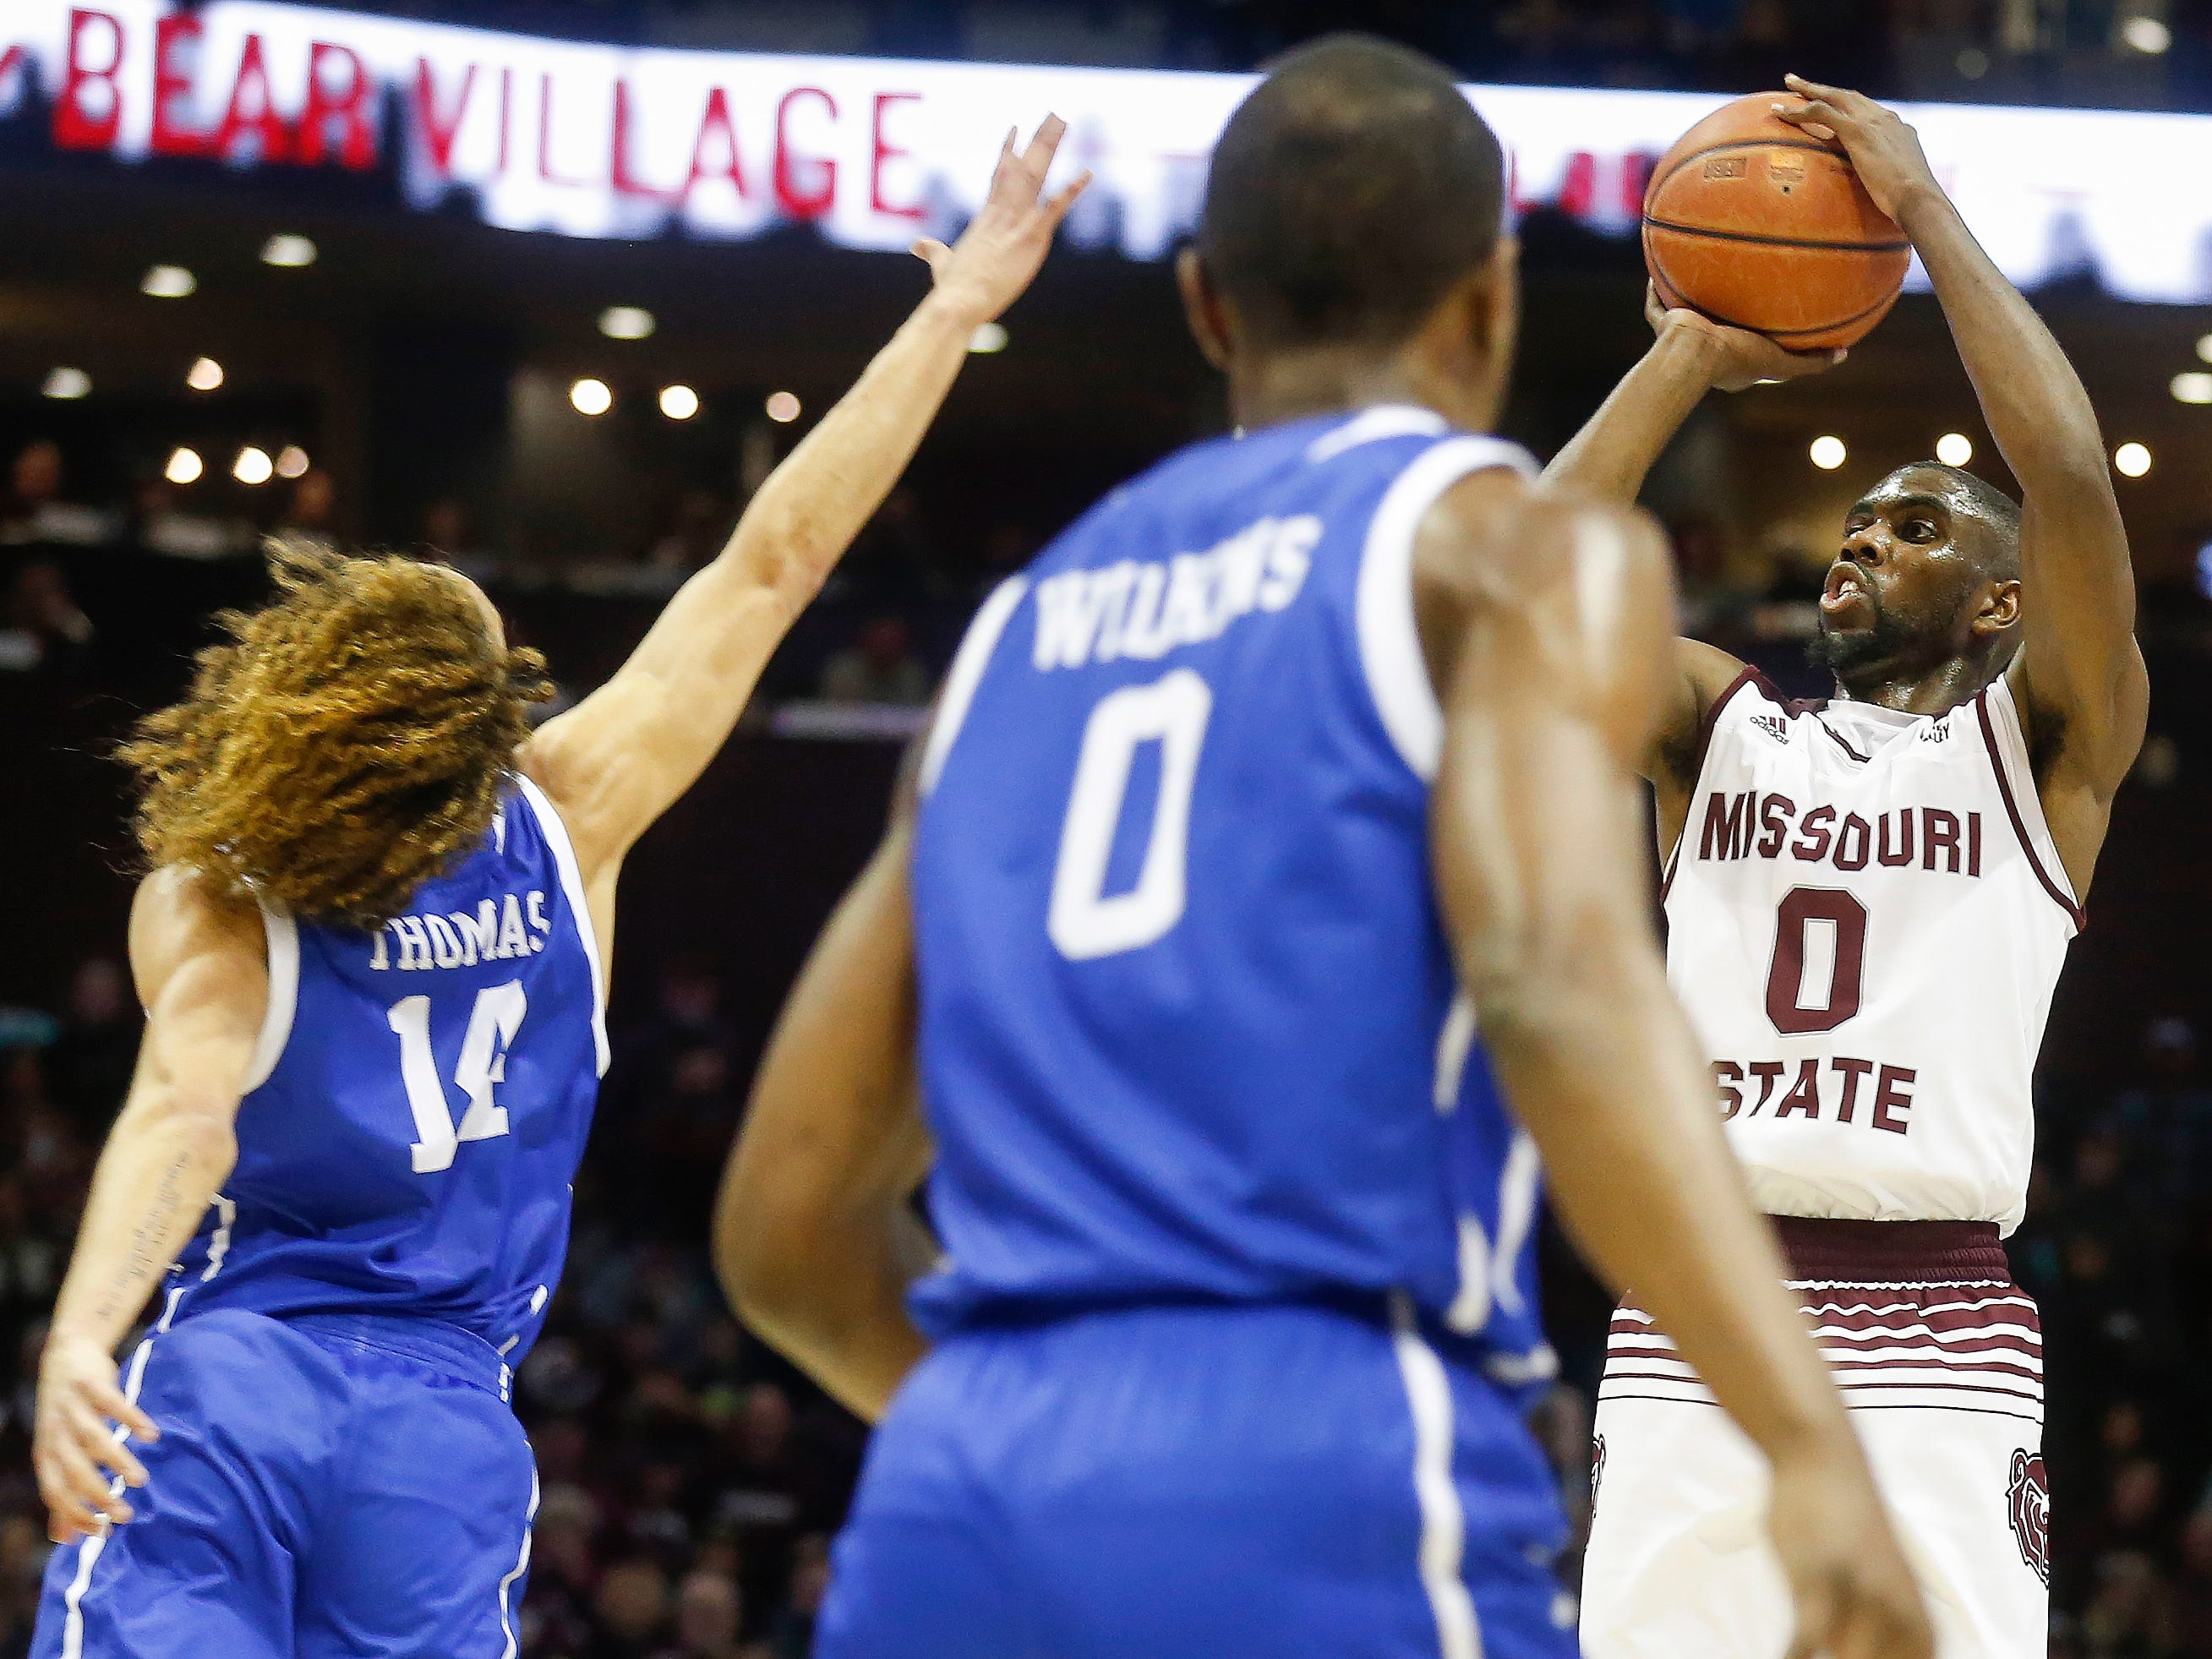 Josh Webster takes a shot during the Missouri State game against Drake at JQH Arena on Saturday, Mar. 2, 2019.